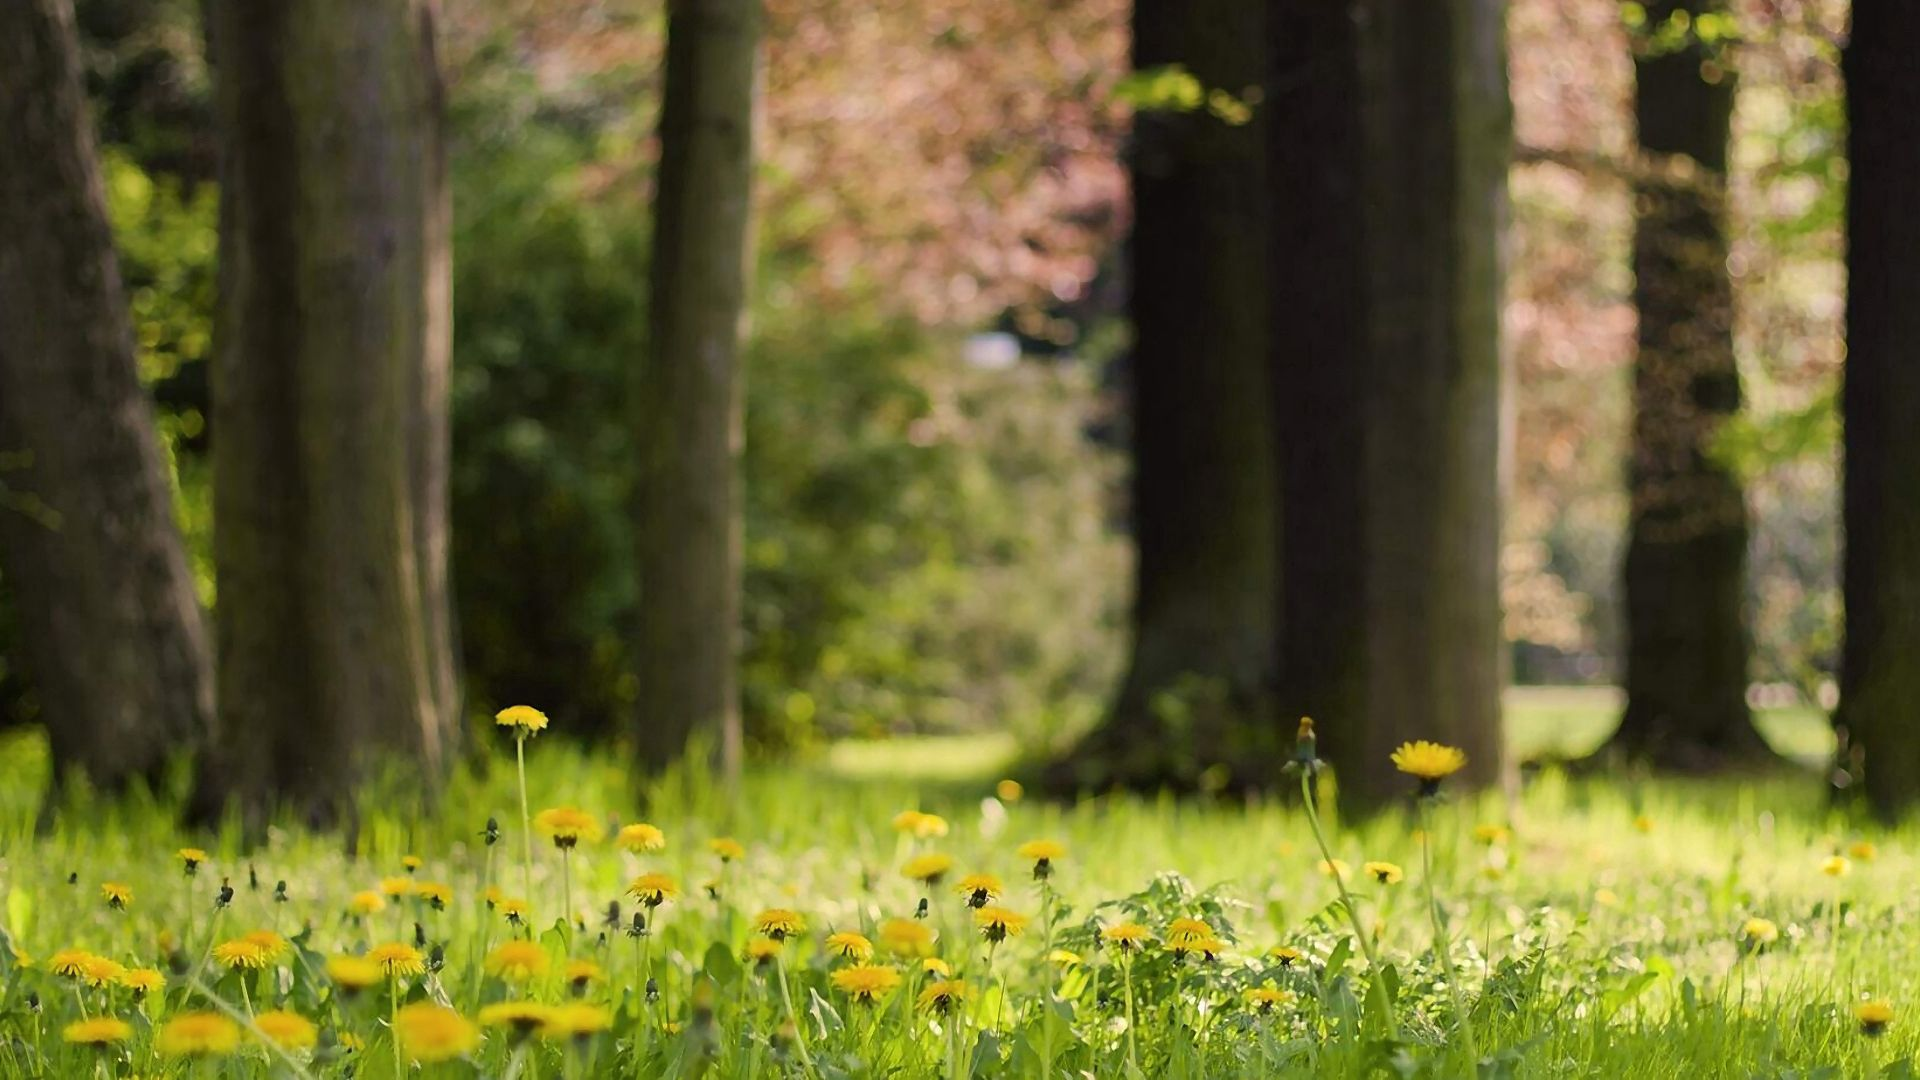 138823 download wallpaper Nature, Flowers, Grass, Dandelions screensavers and pictures for free